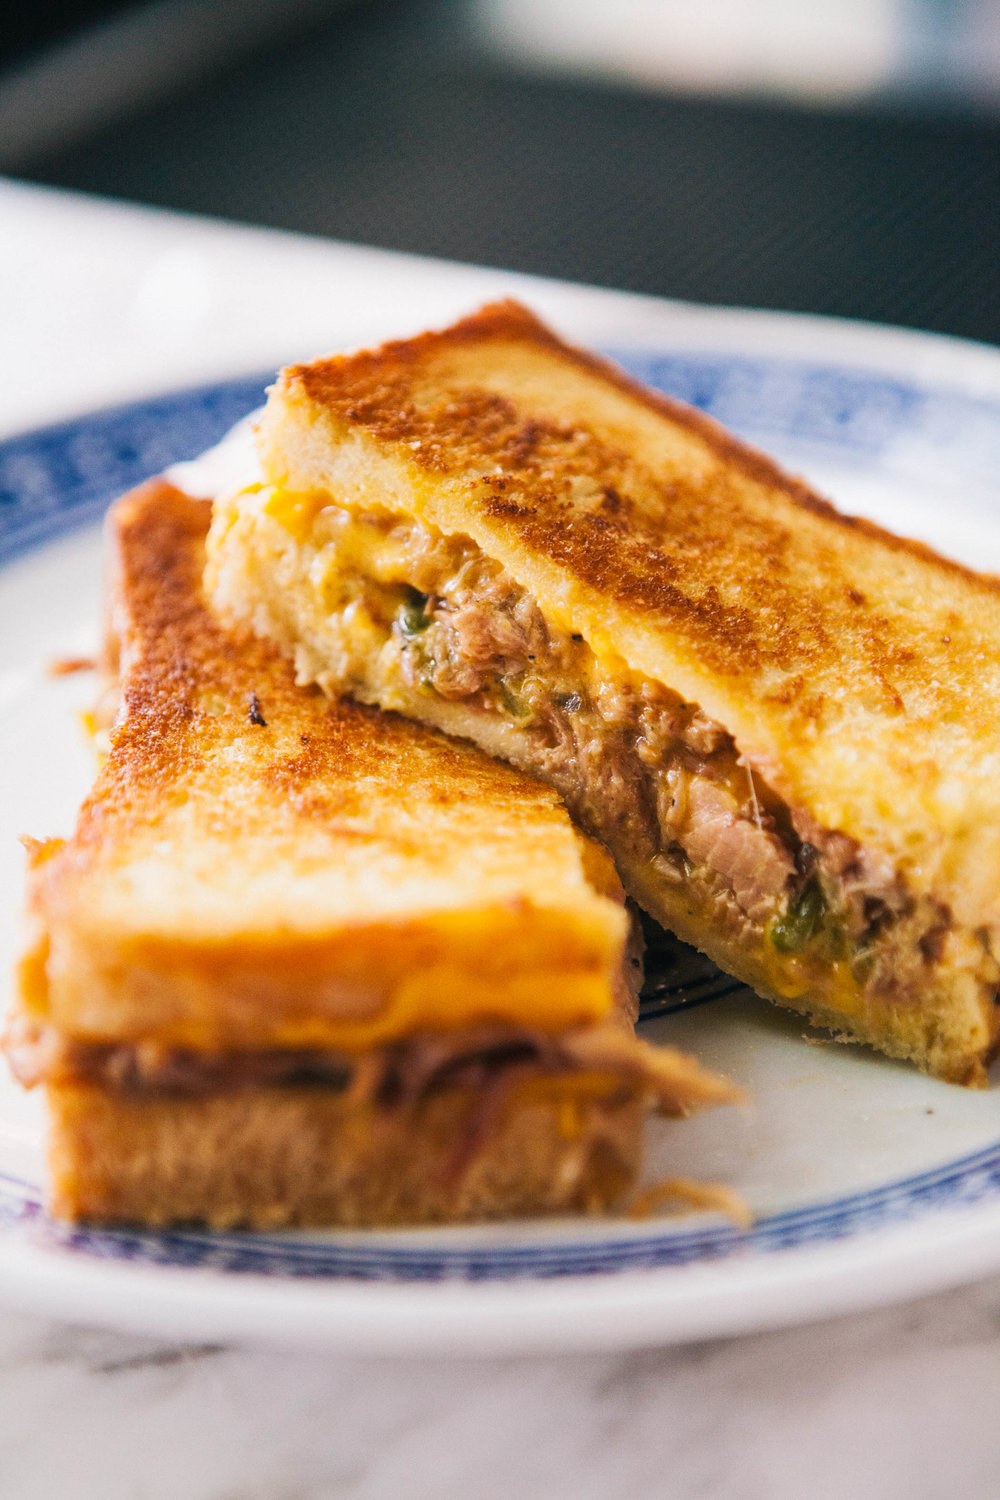 GRILLED CHEESE DE CARNITAS